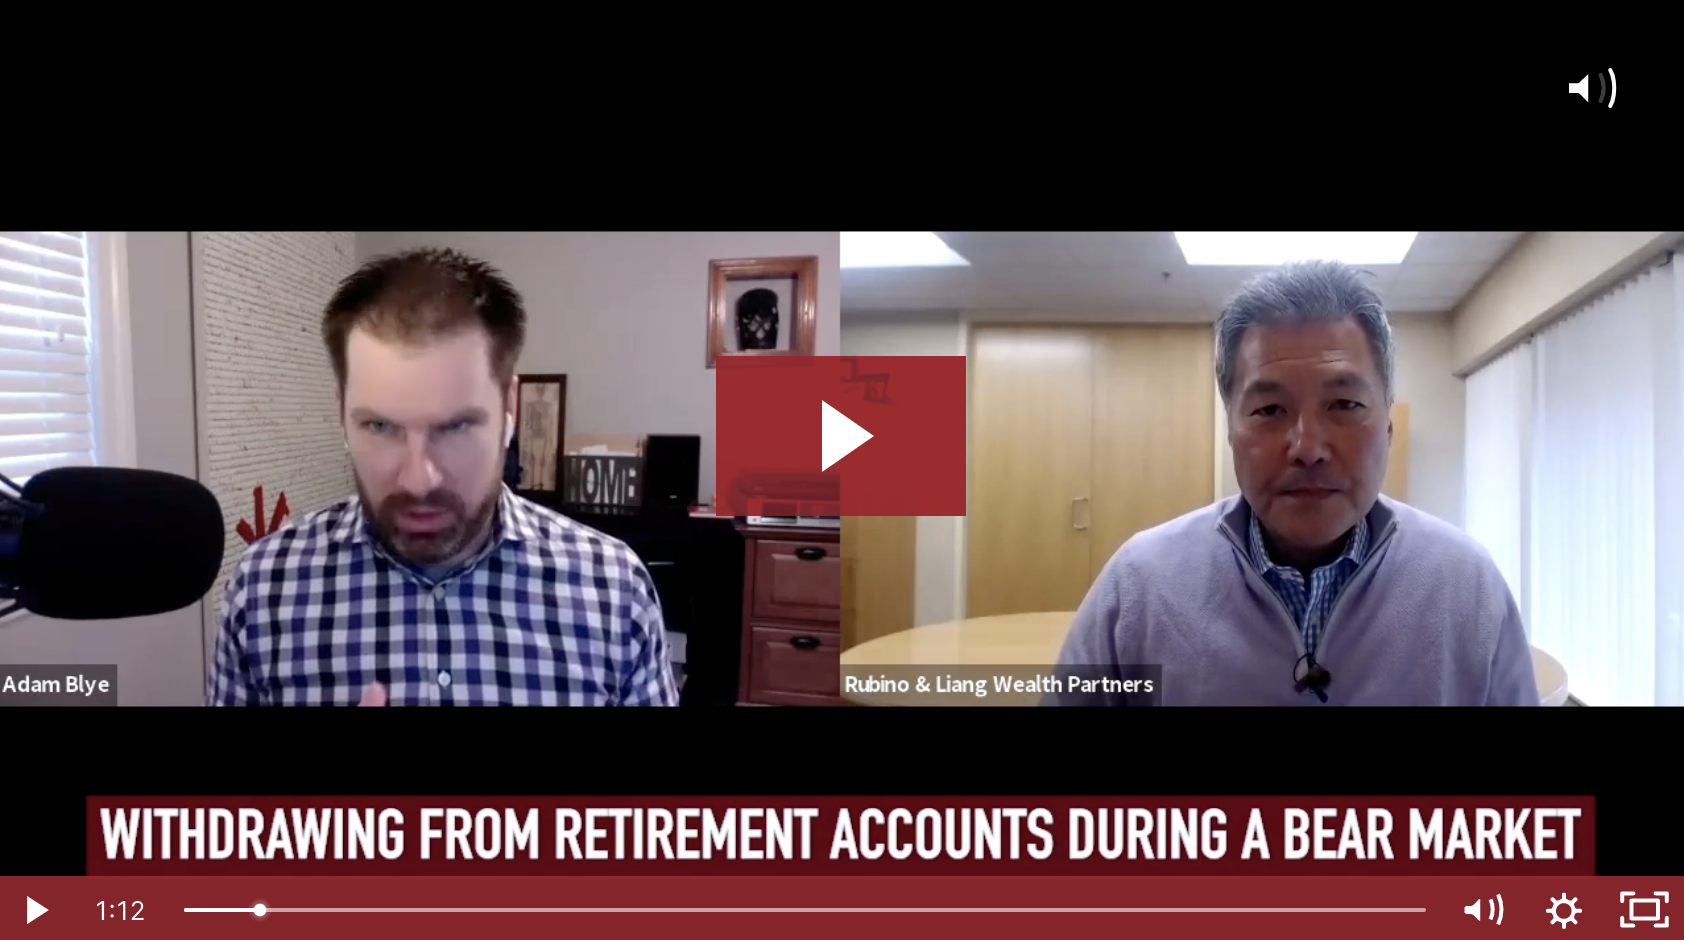 Withdrawing From Retirement Accounts in a Bear Market